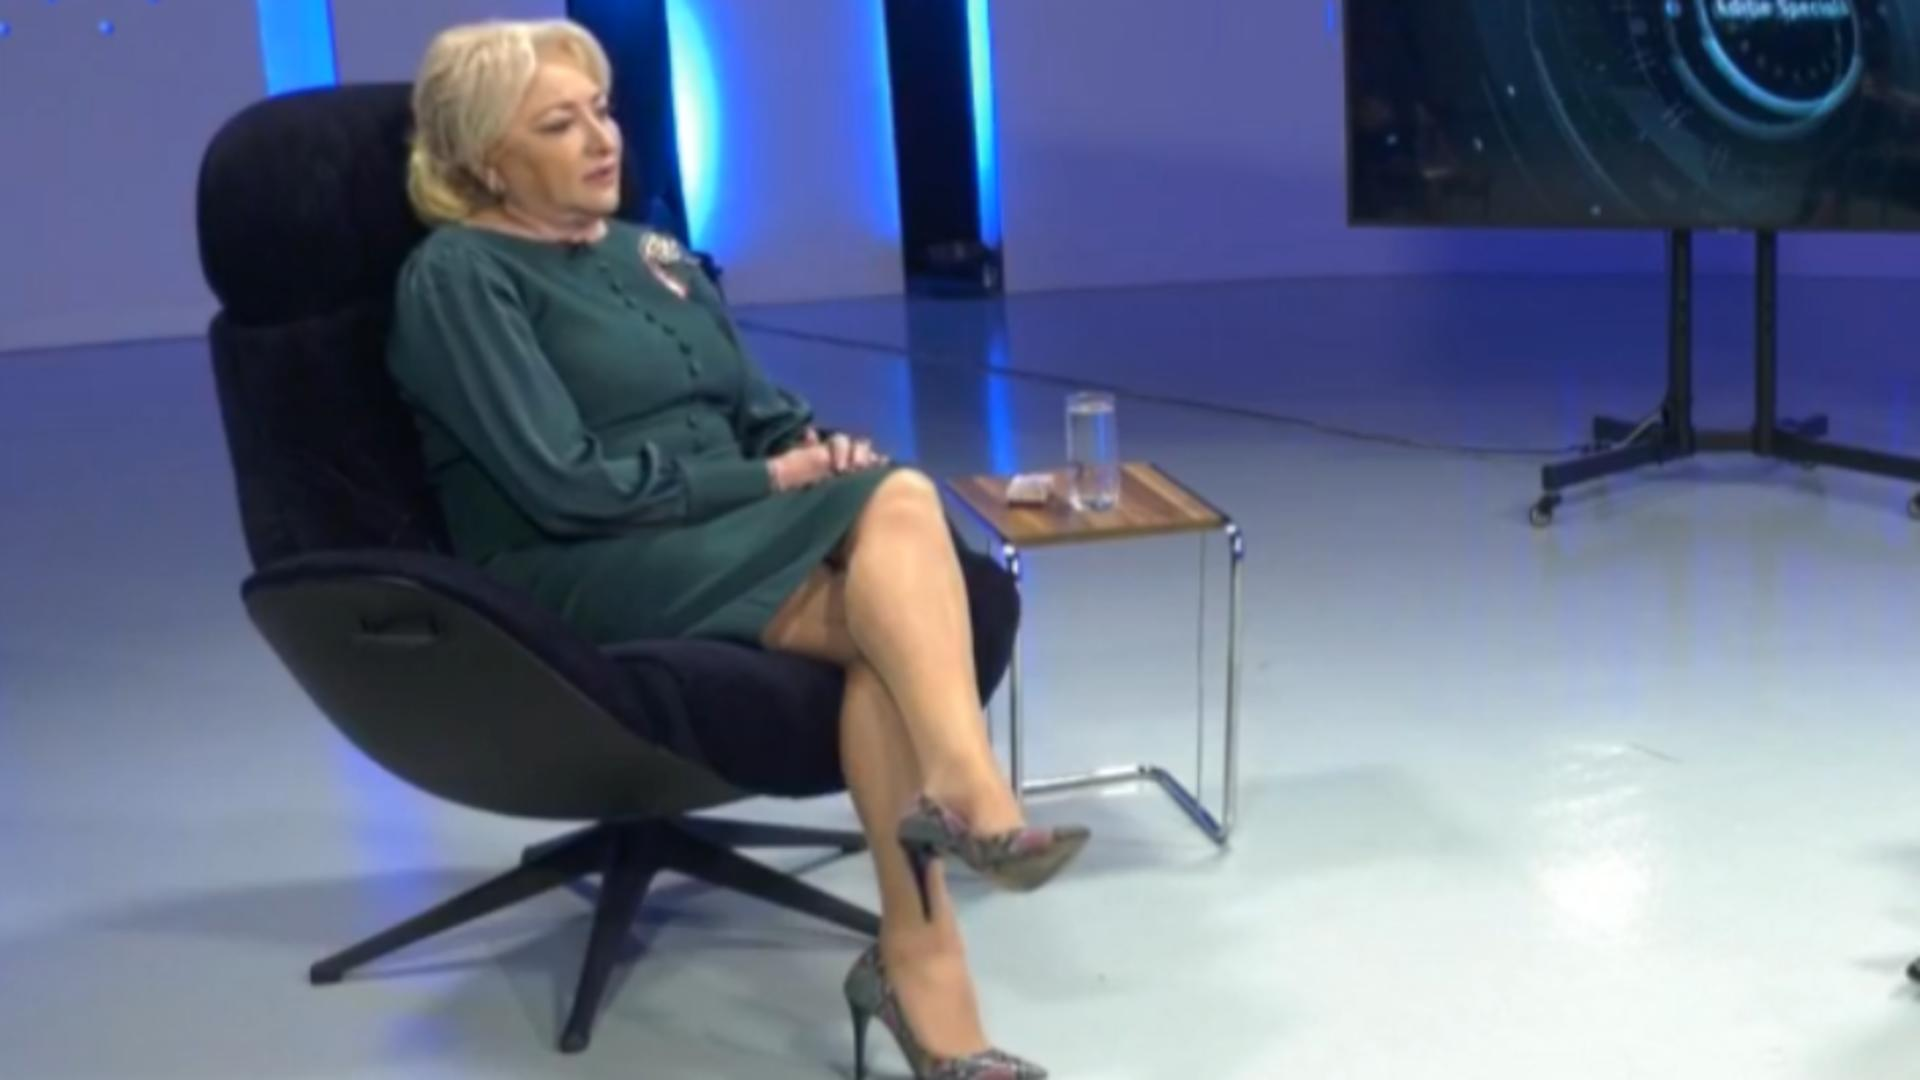 Viorica Dăncilă (foto: captura video A7TV)